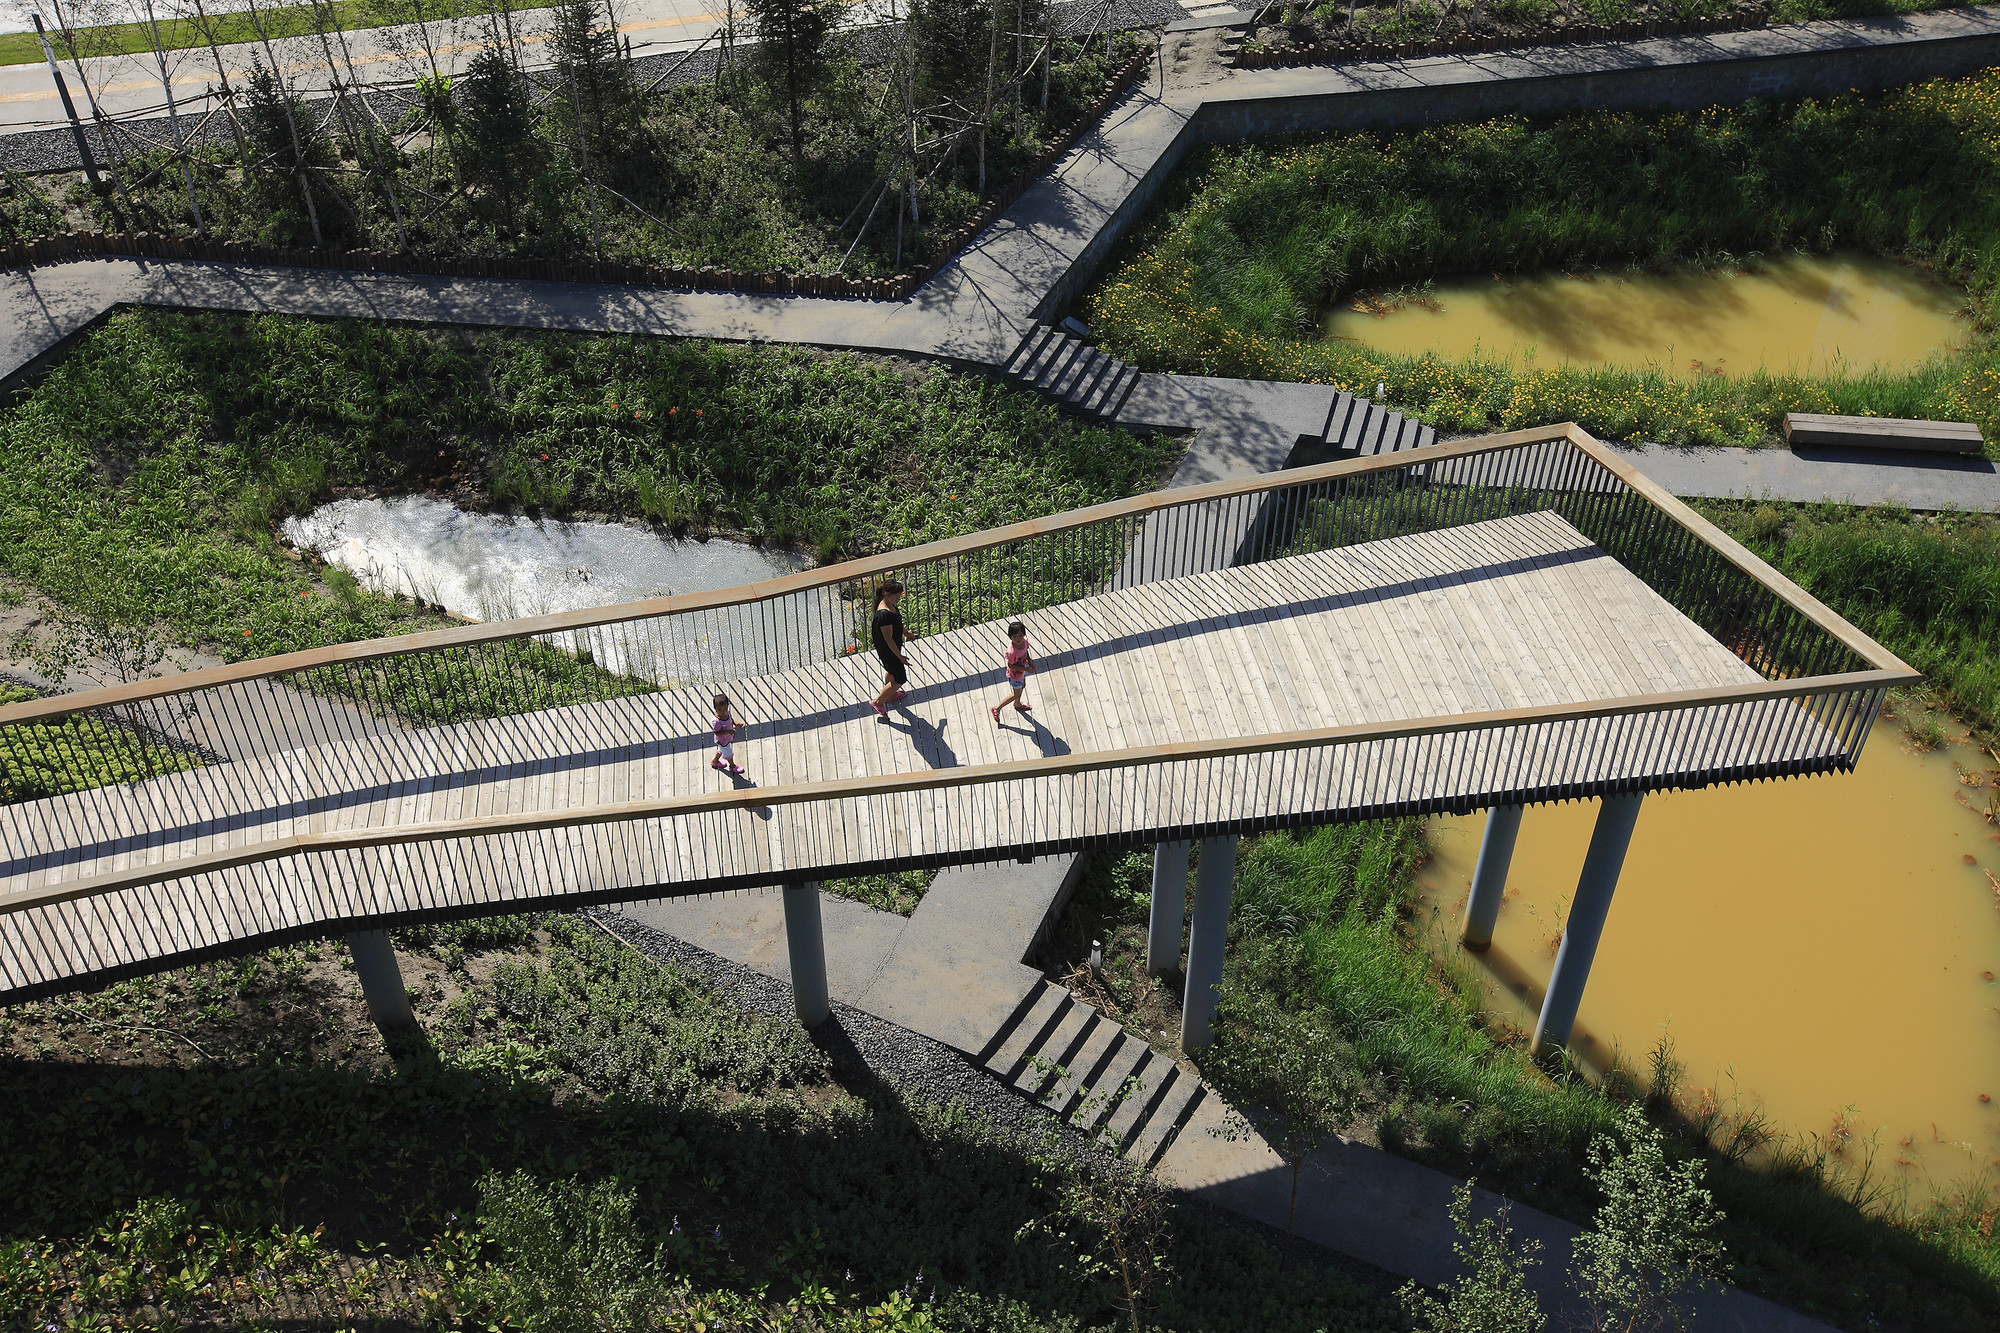 Qunli Stormwater Wetland Park / Turenscape, Courtesy of Turenscape